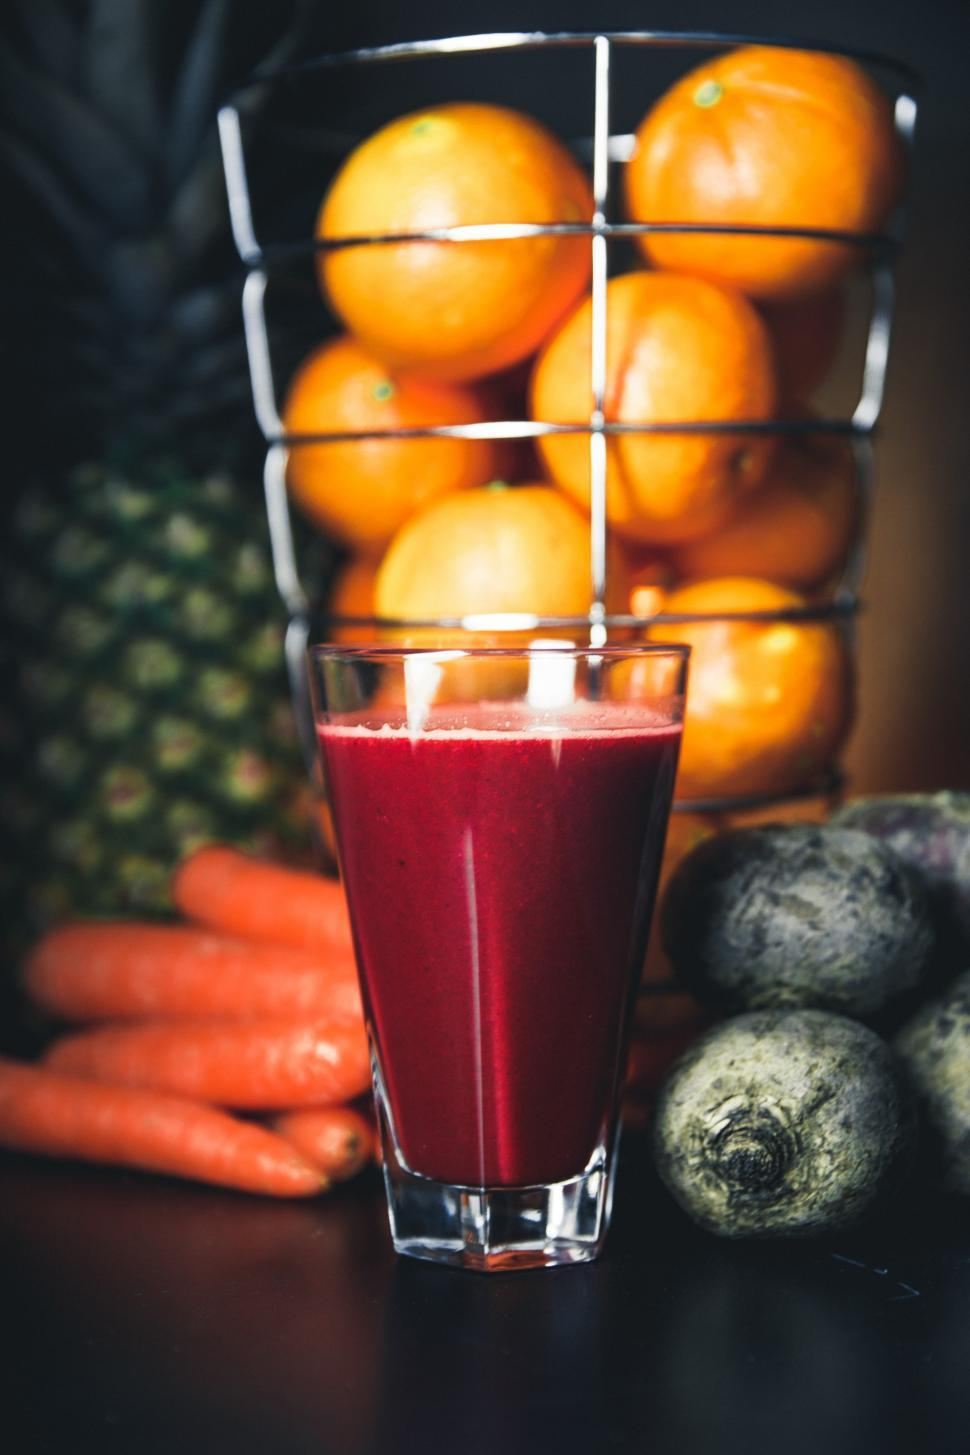 Download Free Stock HD Photo of Close-up of a glass of beetroot juice with other fruits Online